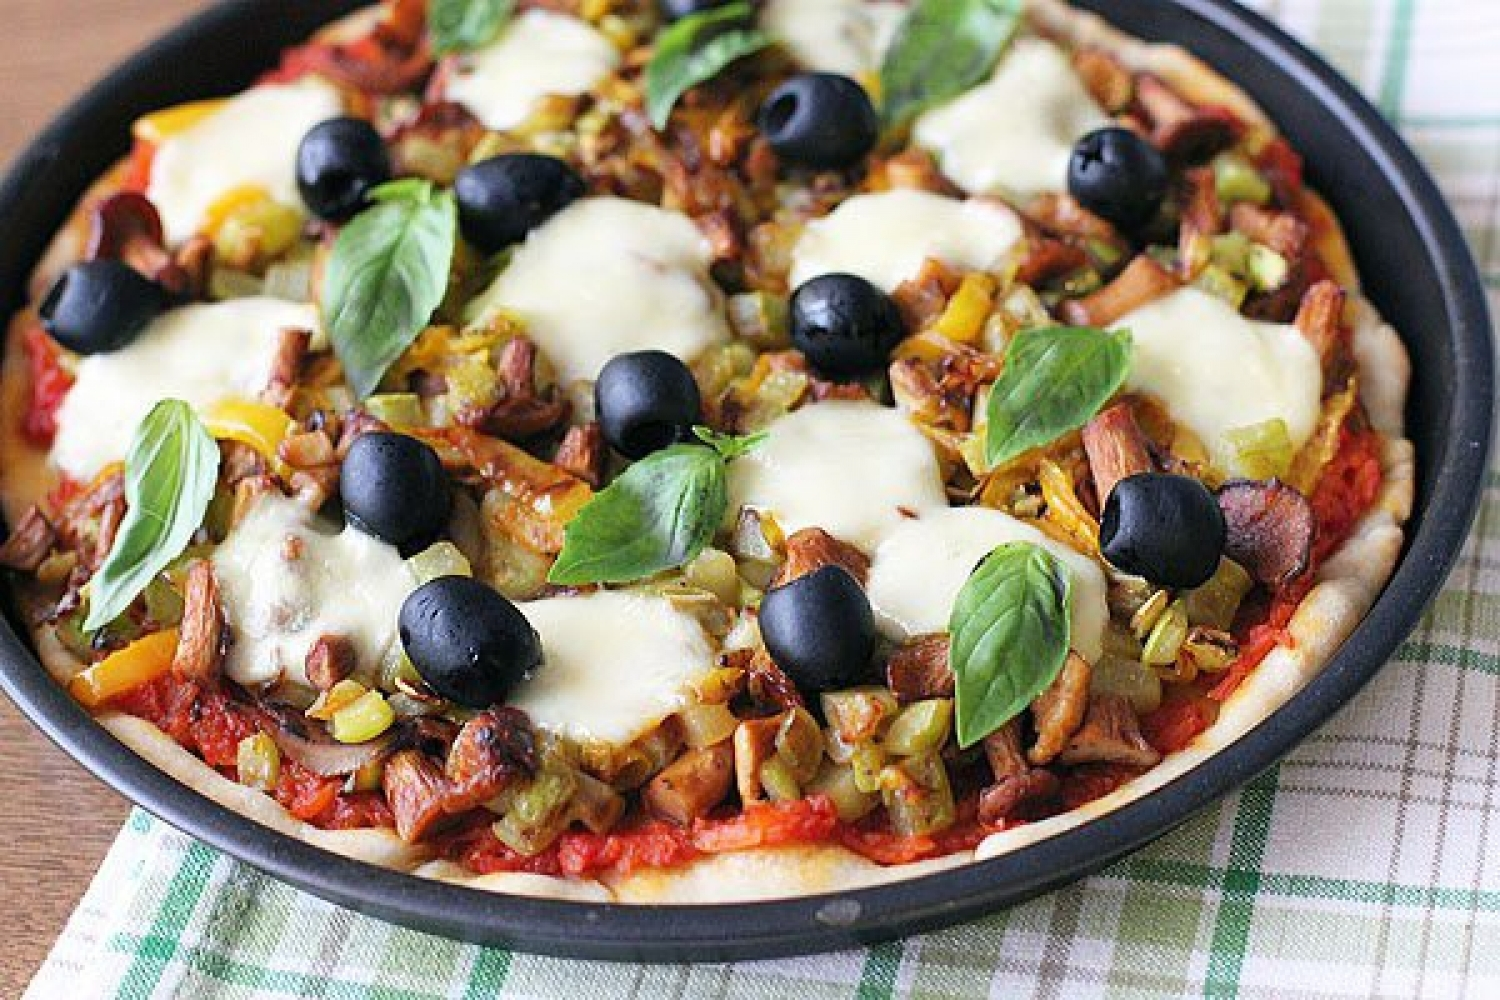 Recipe for juicy vegetable pizza - foto 1581